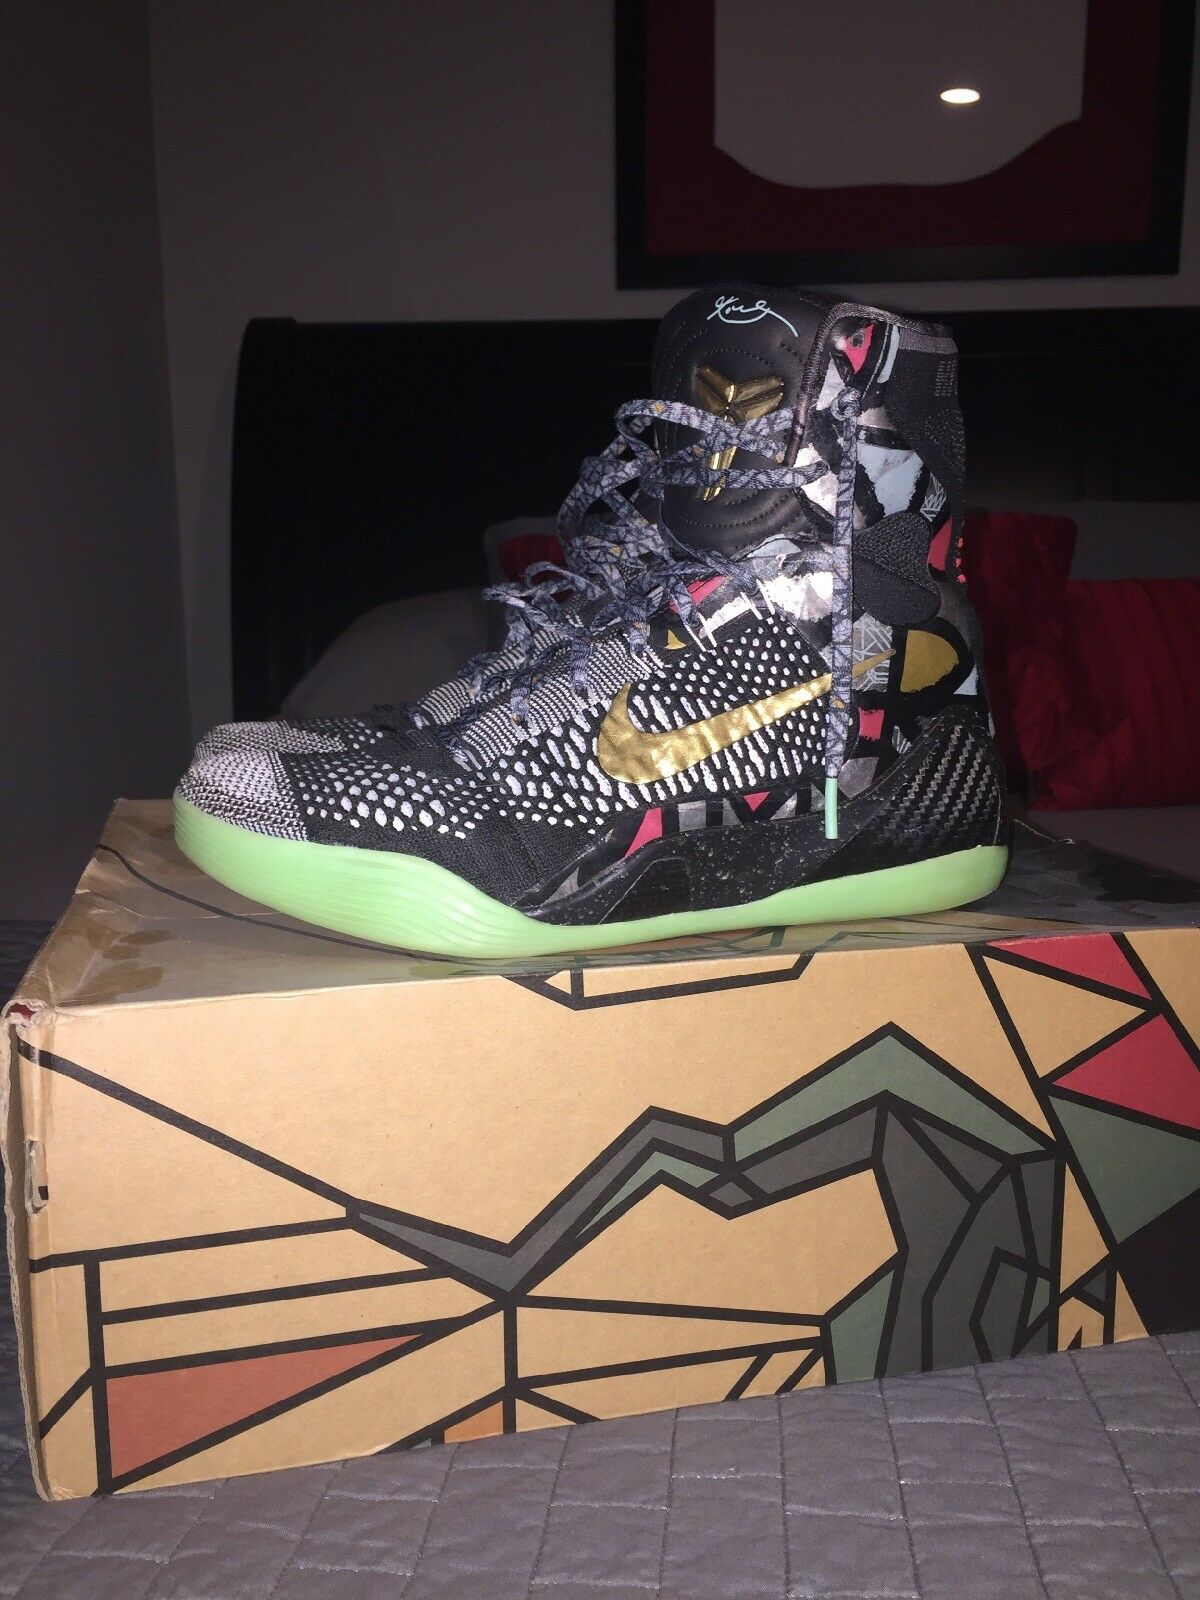 Kobe 9 All Star Gumbo Size 10 VNDS